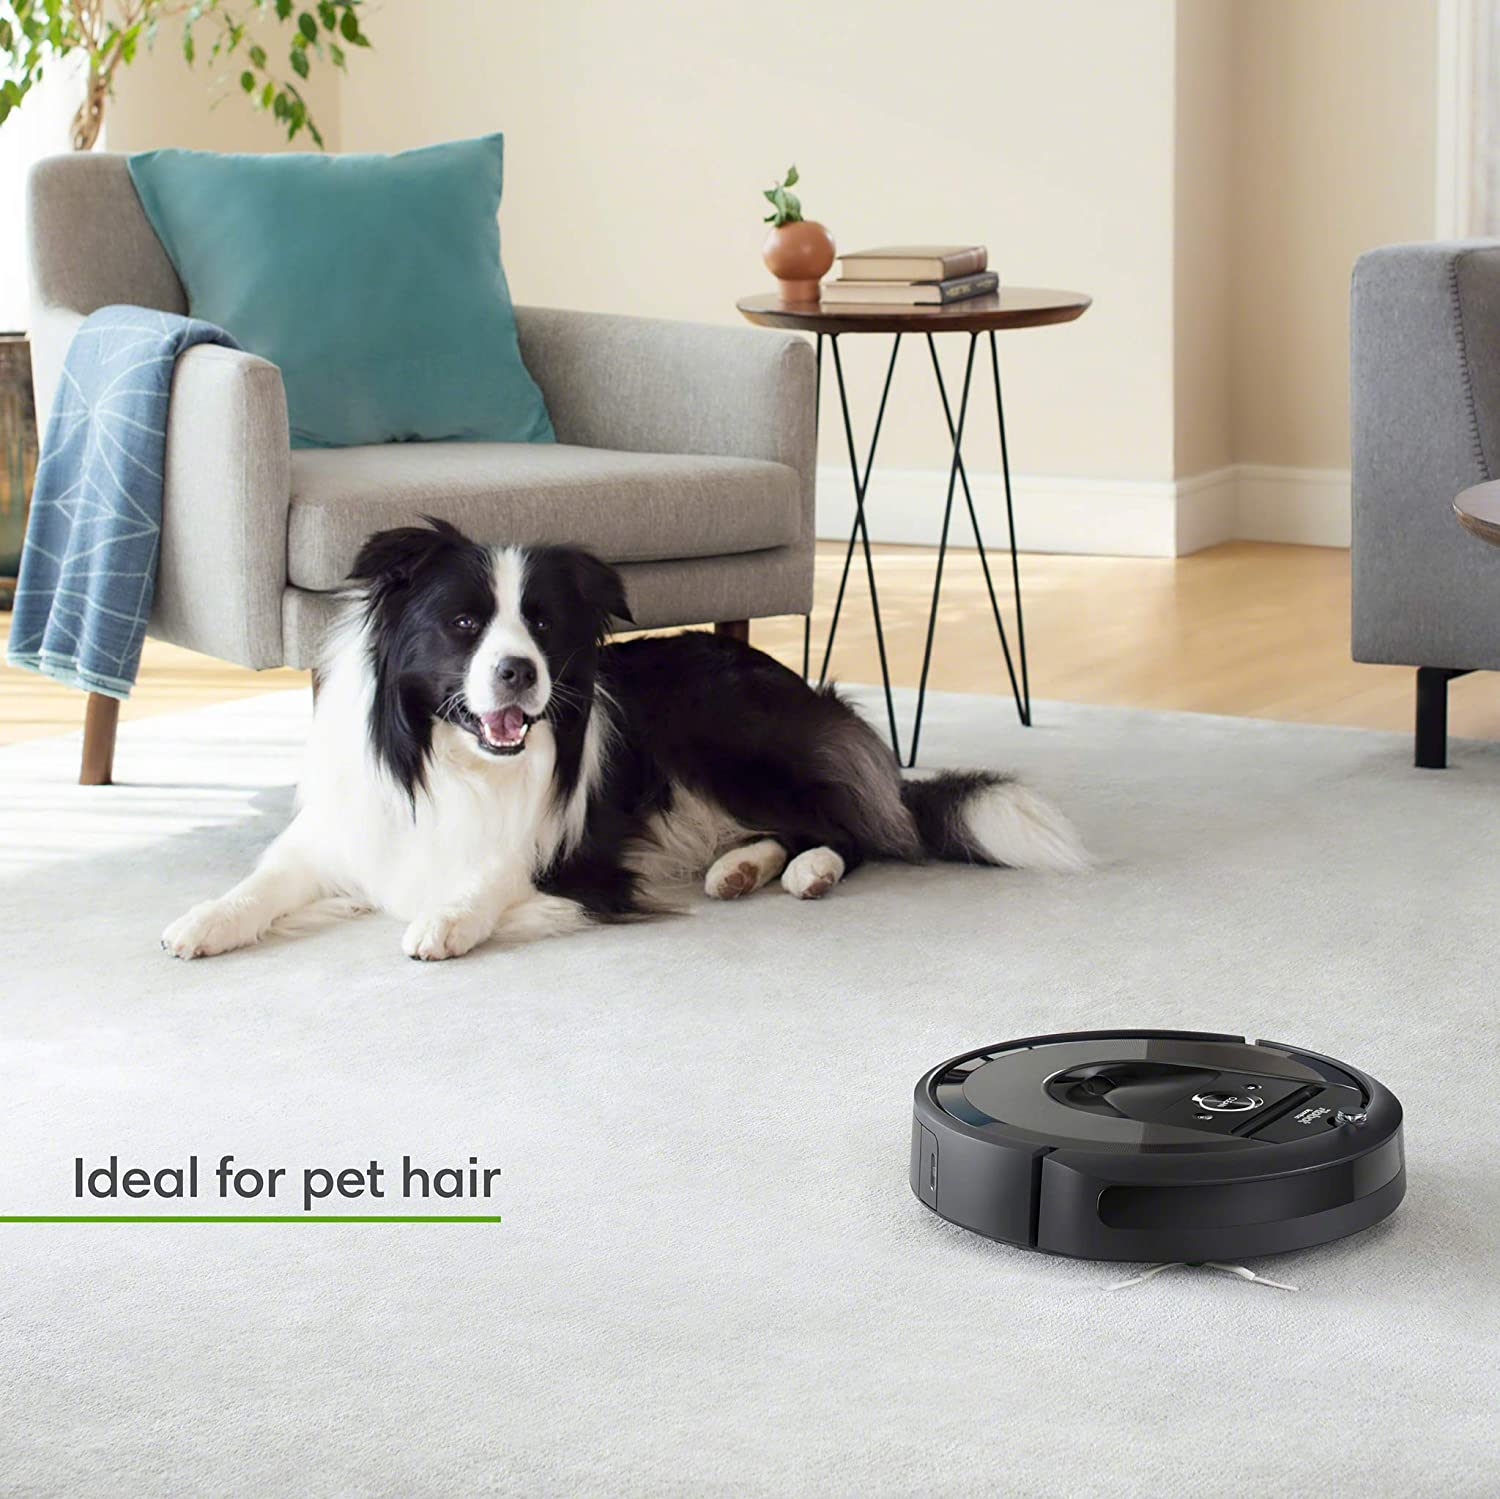 Best Robotic Vacuum for Pet Hair in 2020: Reviews & Buying Guide 21